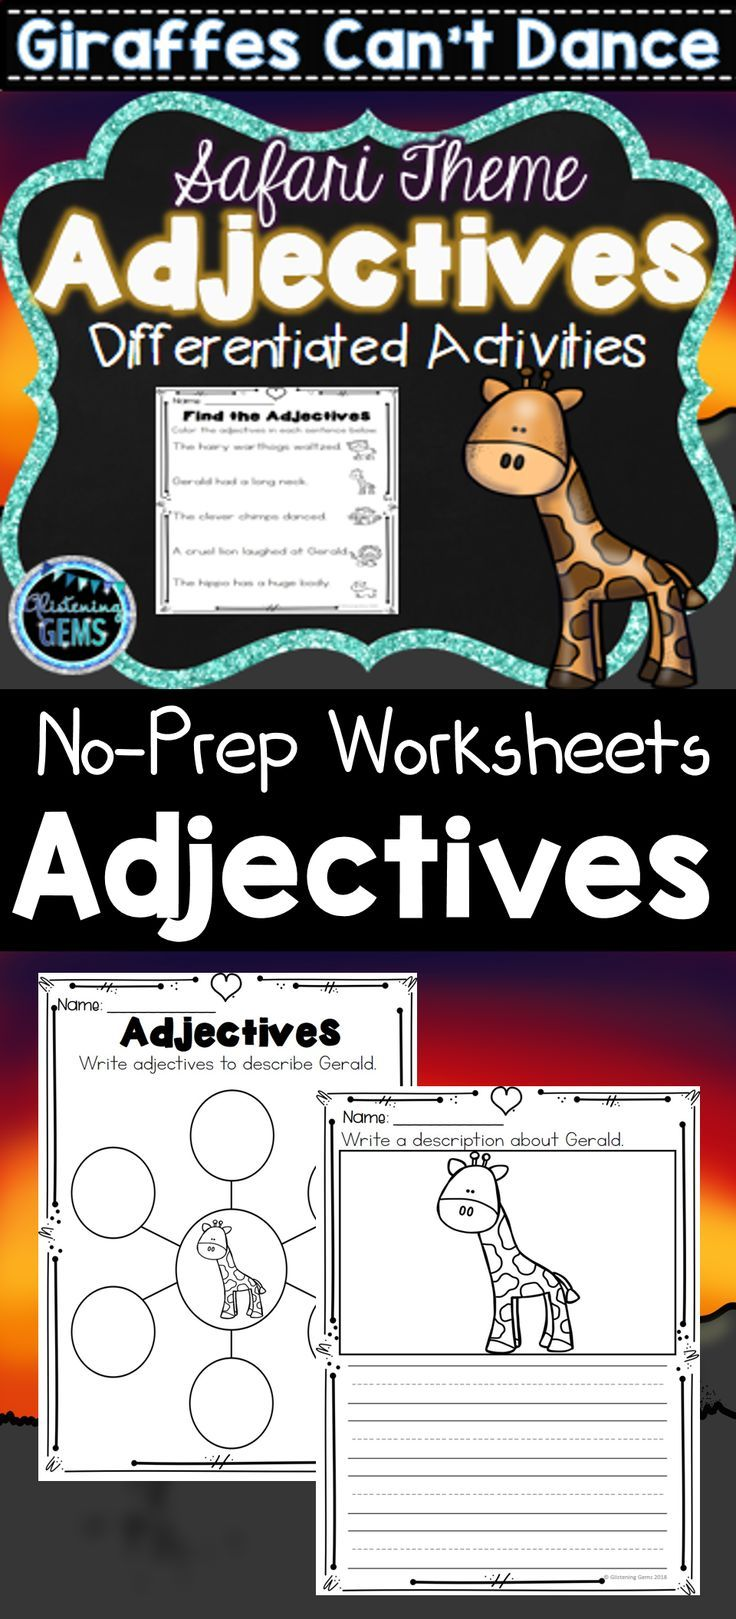 Giraffes Can T Dance Adjective Worksheets Printables Color And Black Lined Giraffescan Tdance Giraffes Cant Dance Adjectives Printables Talk 4 Writing [ 1619 x 736 Pixel ]